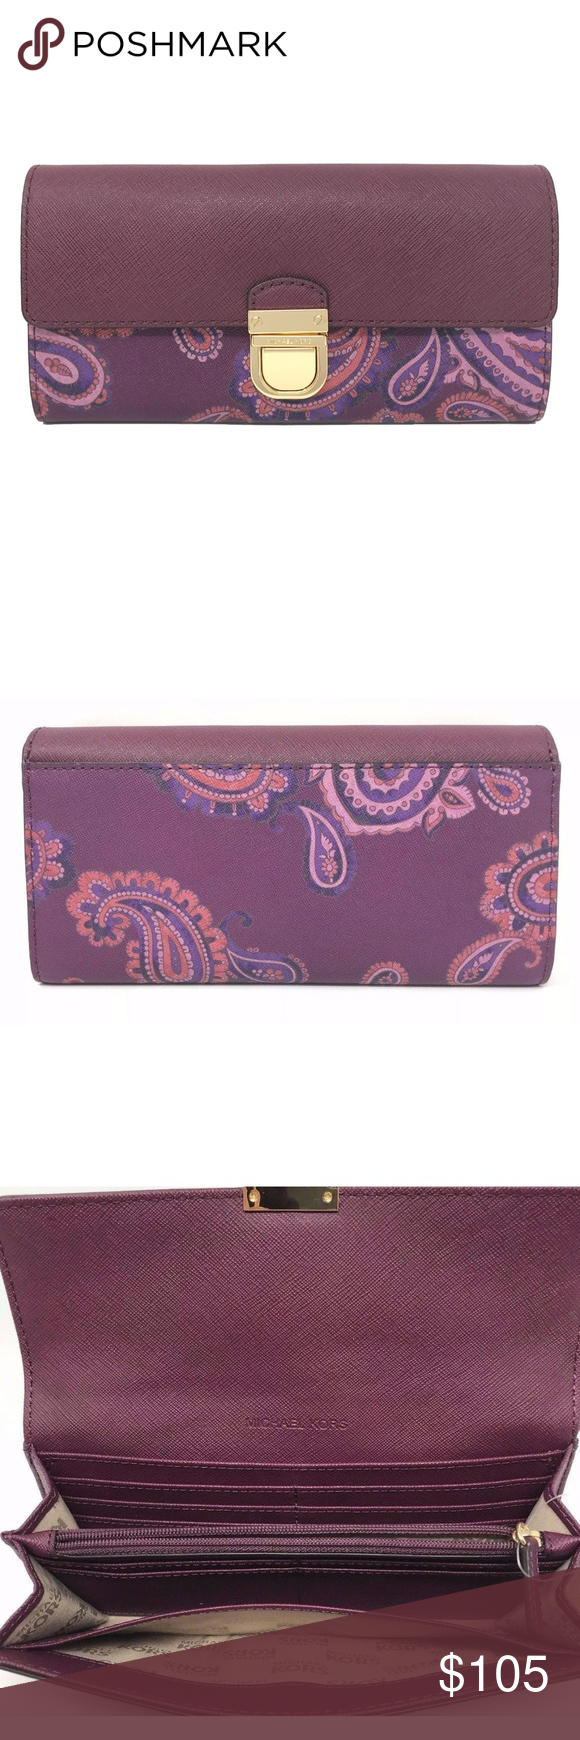 d89367ae67bc Michael Kors Bridgette Paisley Leather Plum Wallet Michael Kors Bridgette  Paisley Leather MK Signature Women's Flap